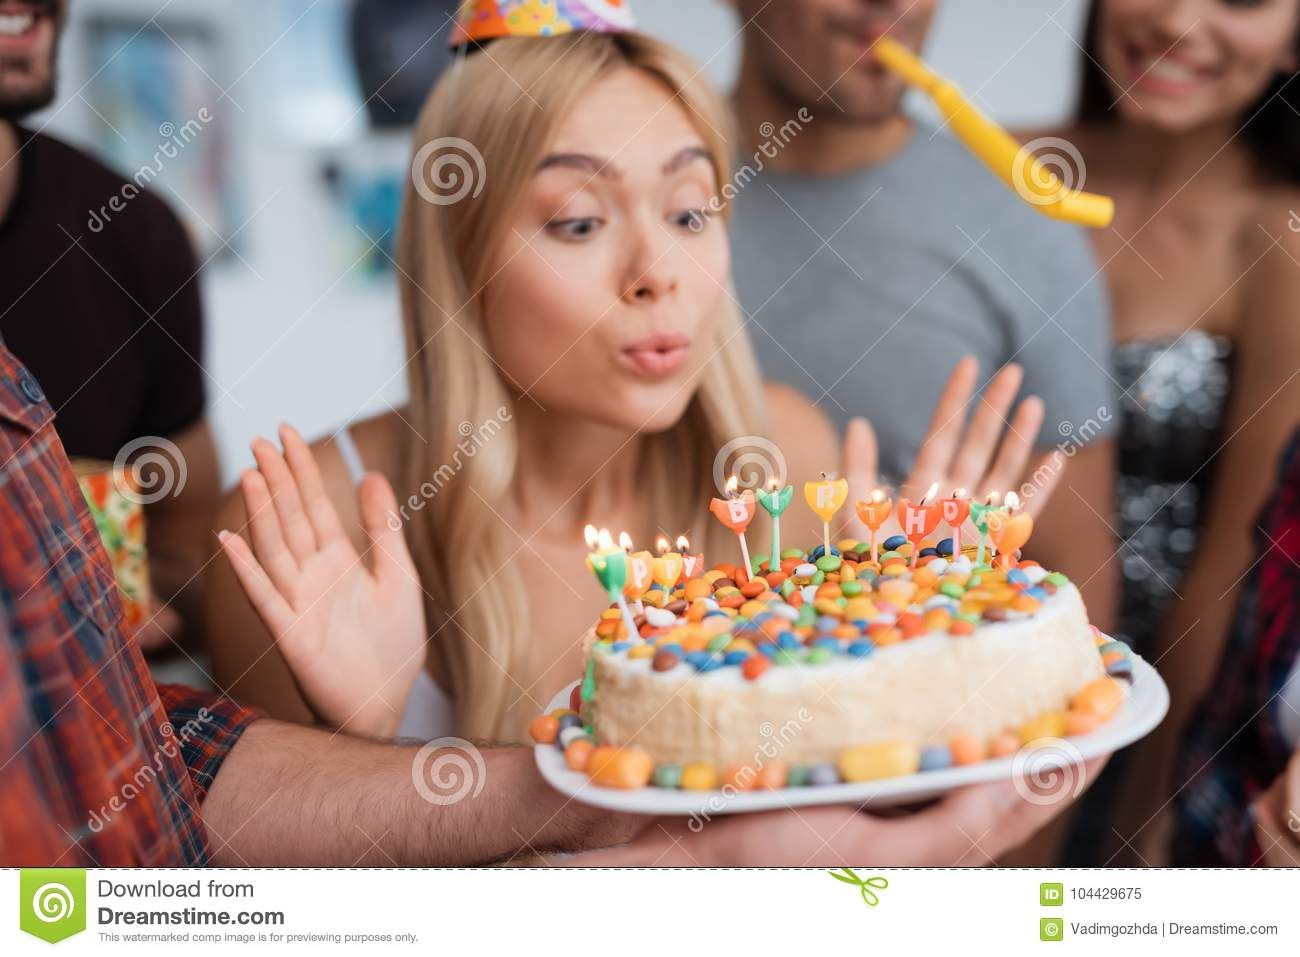 Excellent The Girl Blows Out The Candles On The Birthday Cake A Girl Blows Funny Birthday Cards Online Elaedamsfinfo